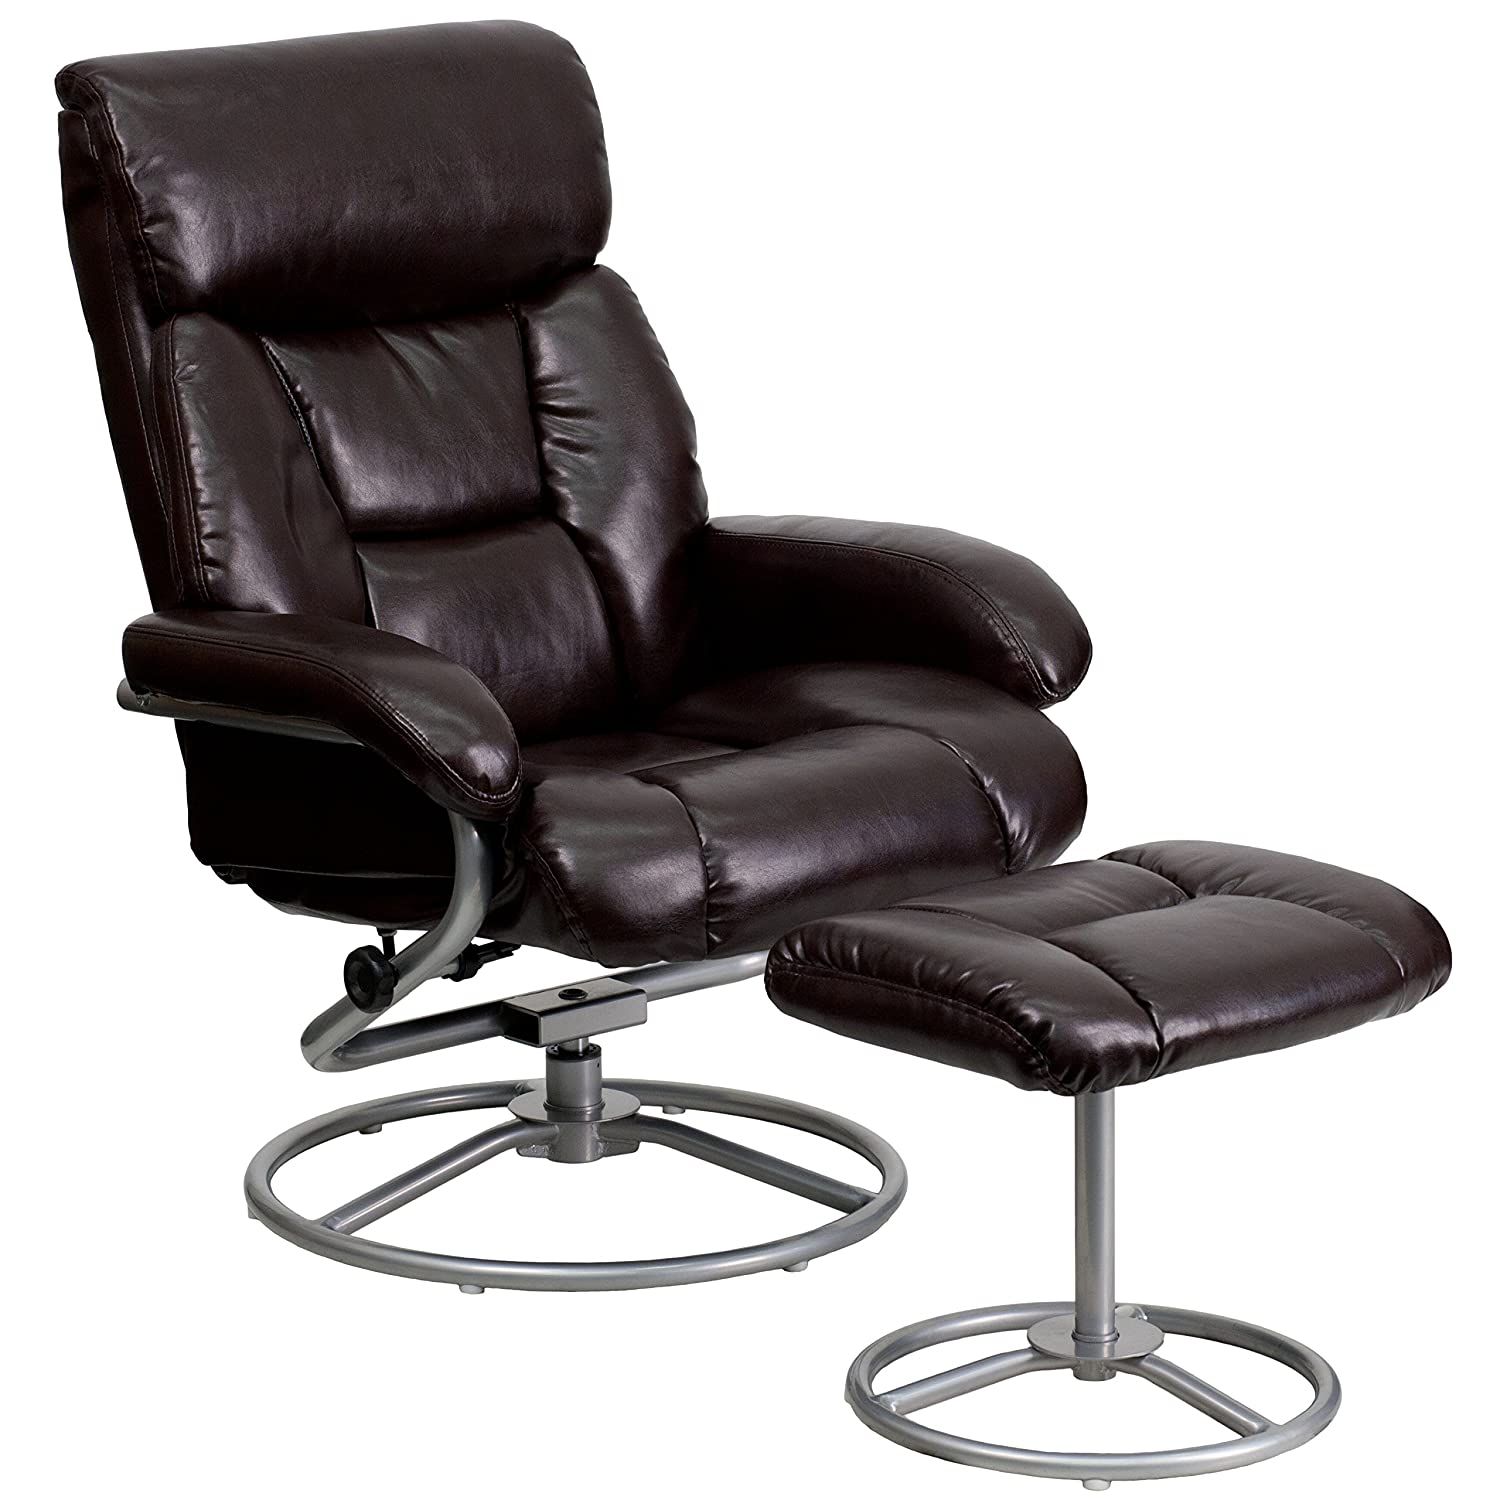 Flash Furniture Contemporary Brown Leather Recliner and Ottoman with Metal Base BT-70230-BRN-CIR-GG